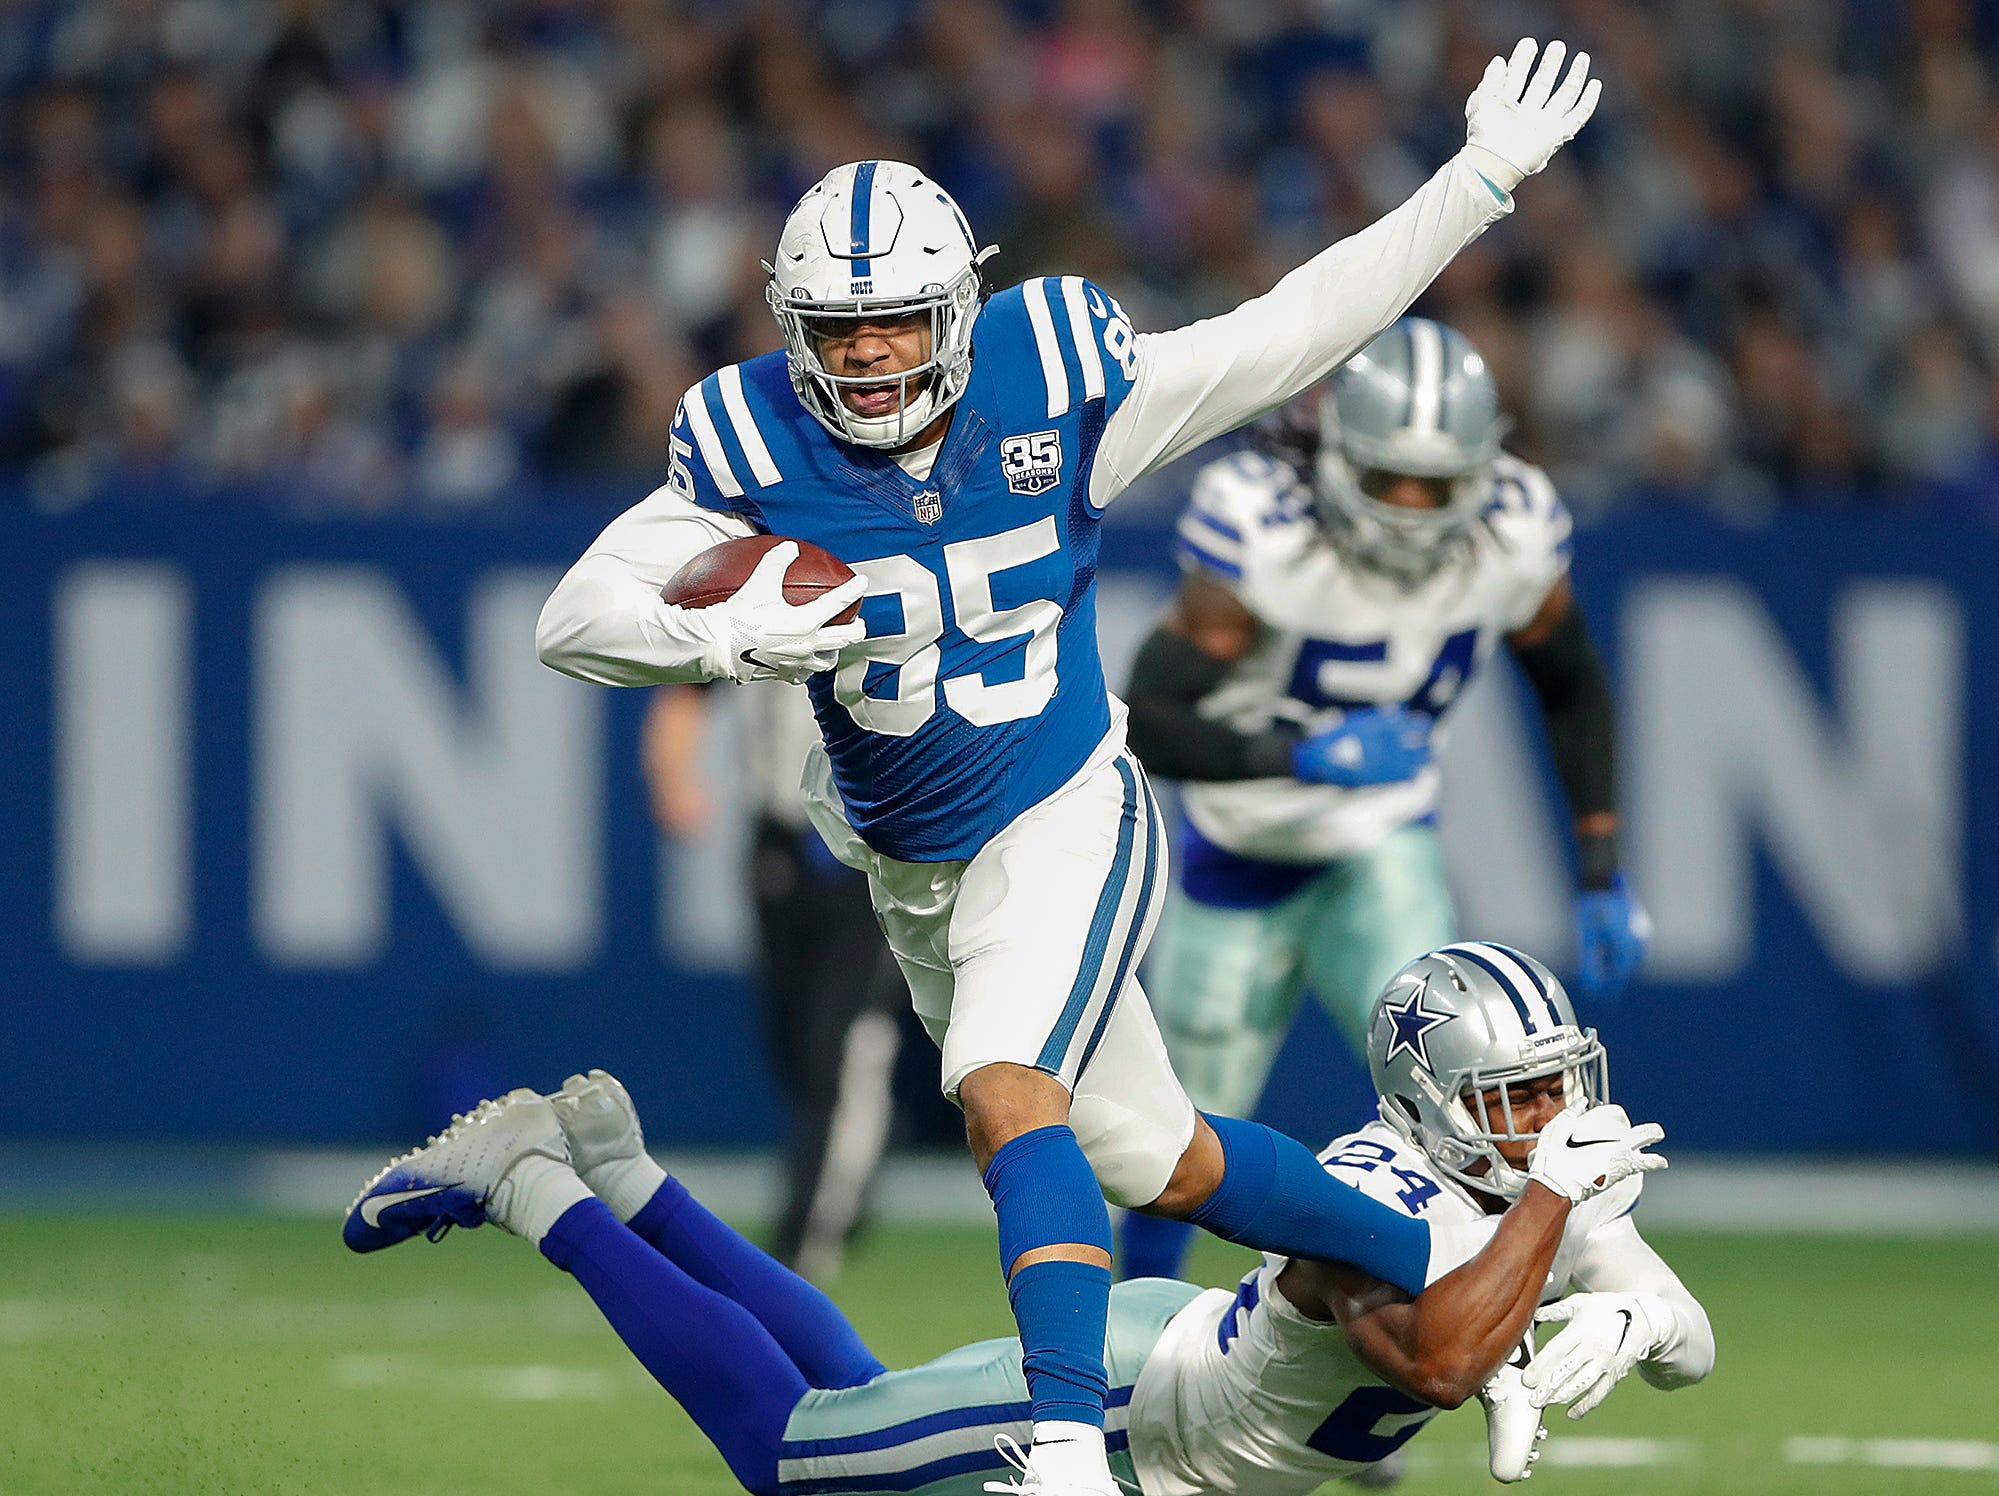 Indianapolis Colts tight end Eric Ebron (85) runs away from Dallas Cowboys cornerback Chidobe Awuzie (24) in the first half of their game at Lucas Oil Stadium on Sunday, Dec. 16, 2018.